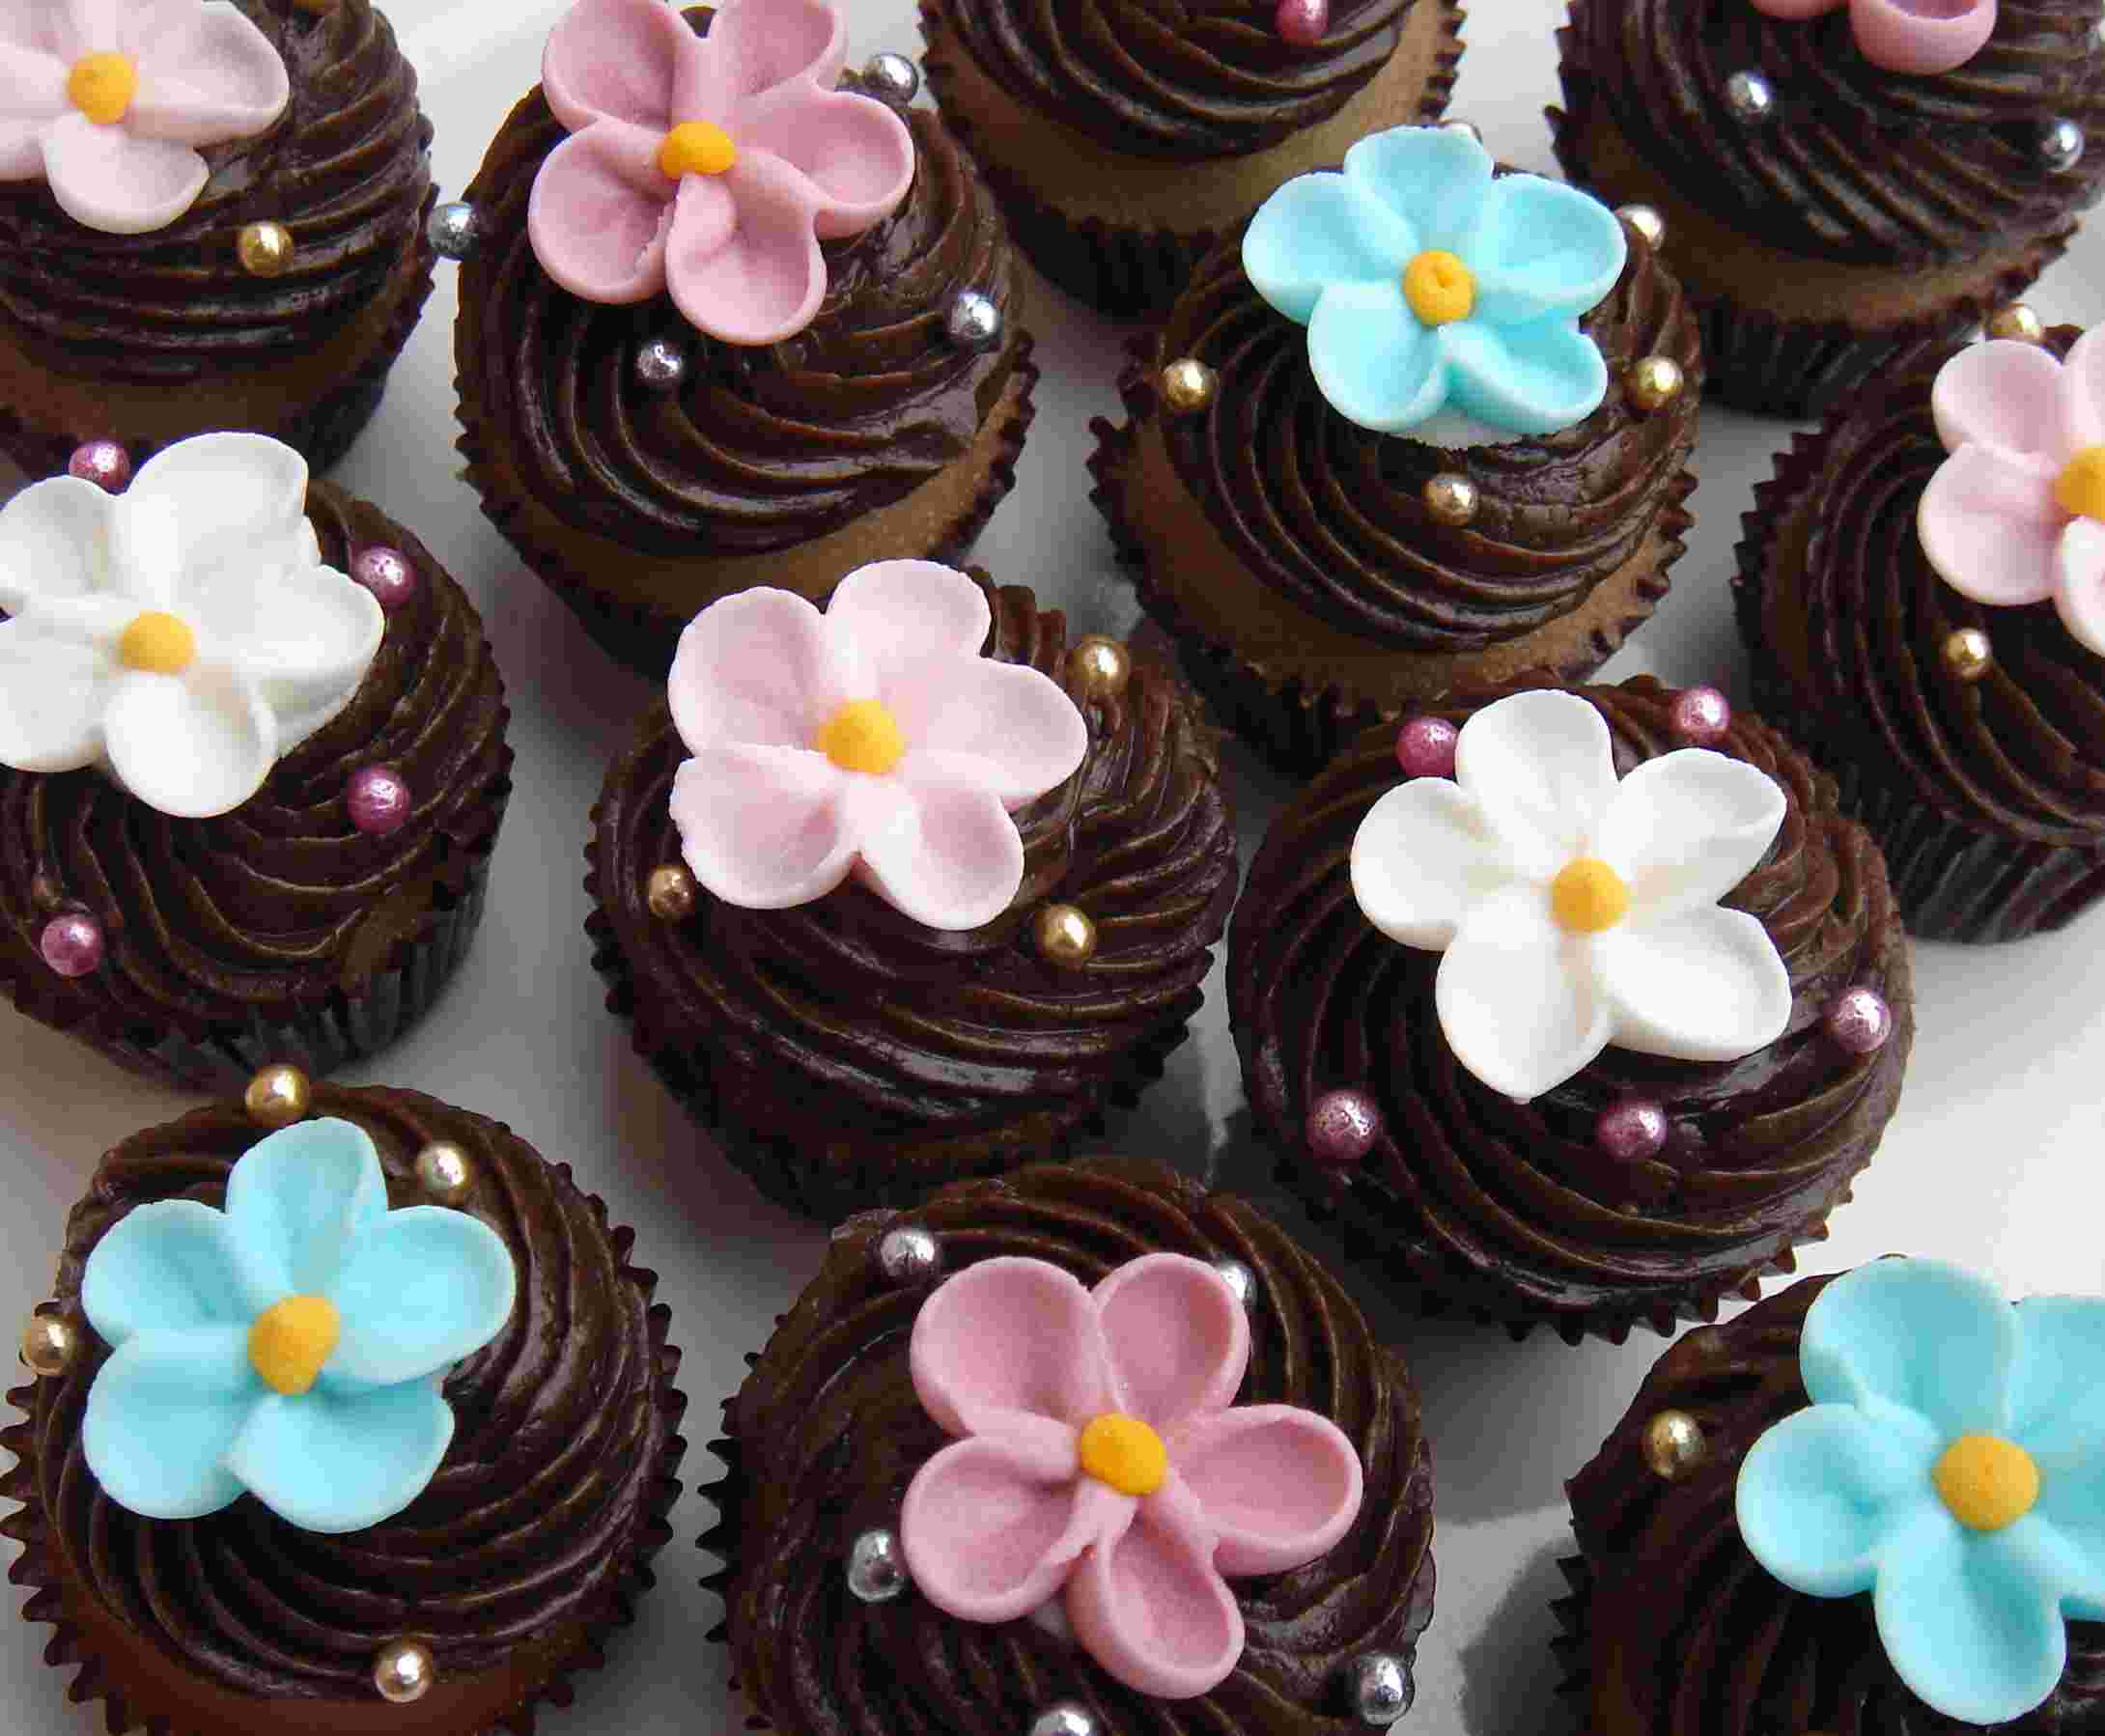 11 Decorated Chocolate Cupcakes Photo Cupcakes Decorated With